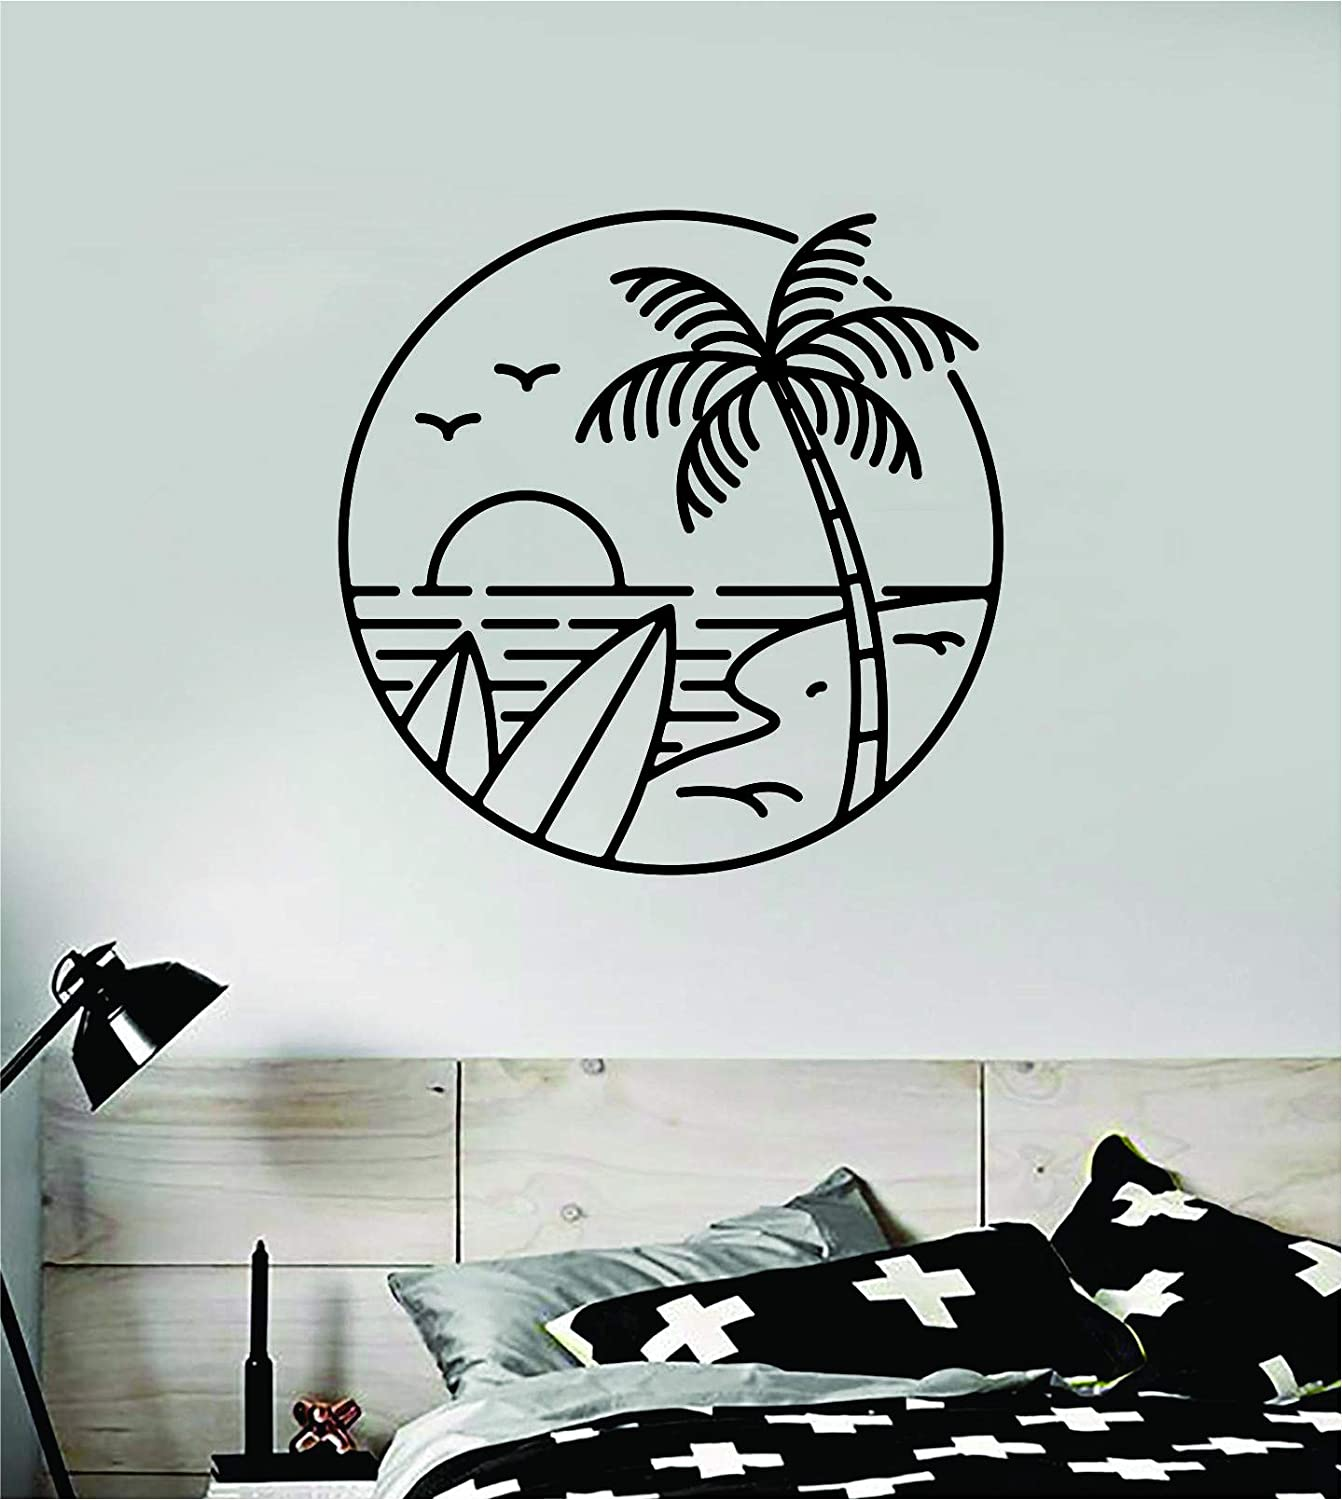 Surf Beach Circle Quote Wall Decal Sticker Room Bedroom Art Vinyl Decor Decoration Teen Inspirational Adventure Sports Ocean Beach Hawaiian Aloha Surf Palm Trees Beautiful Shop Shaka